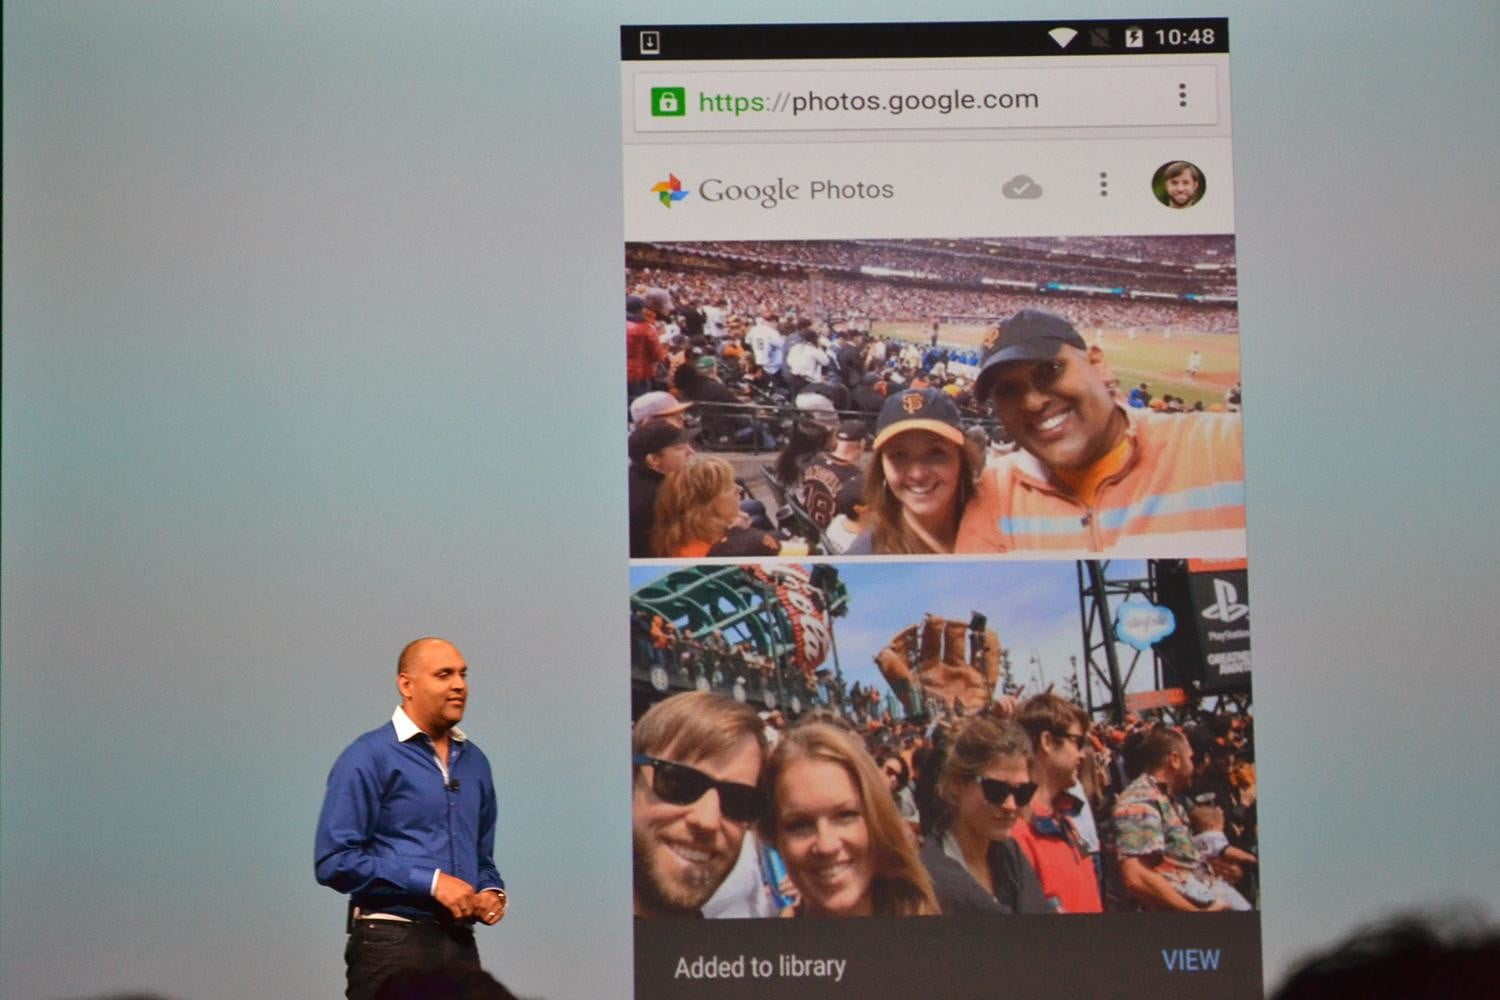 google photos app news 2015 io 3